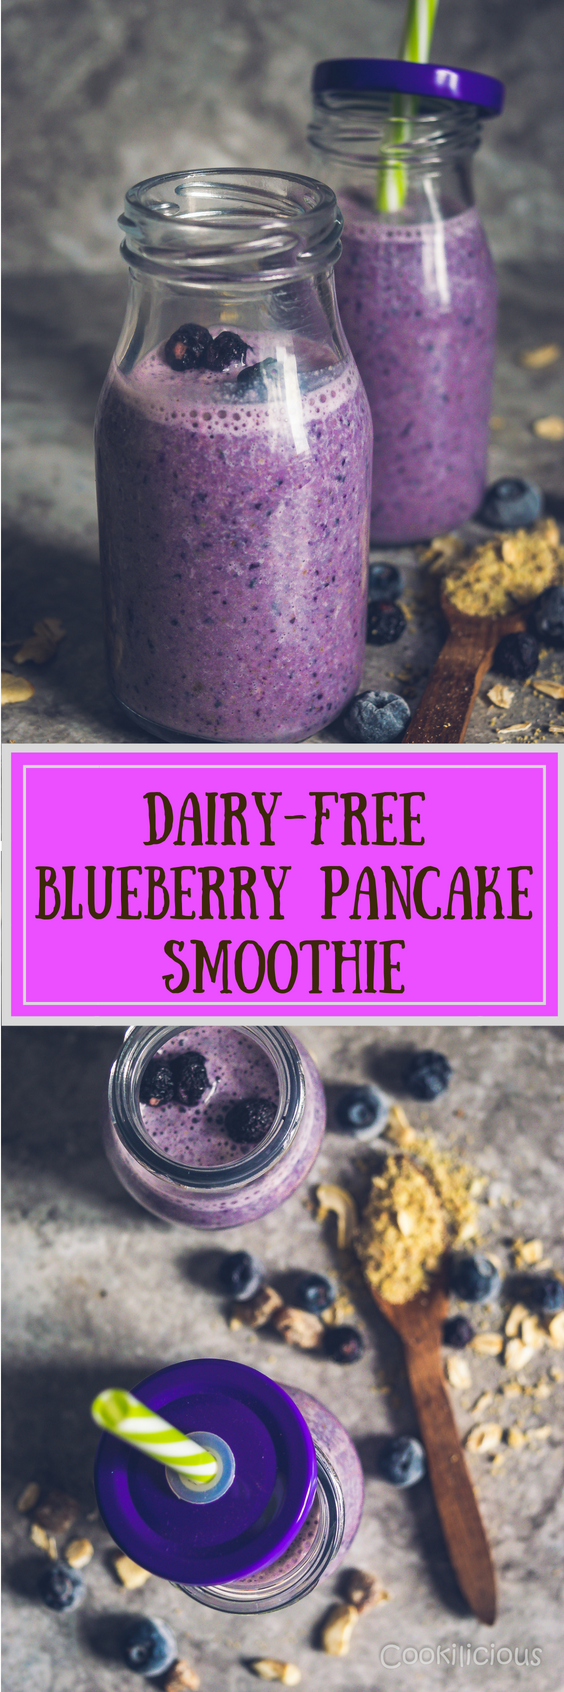 2 images of Dairy-Free Blueberry Pancake Smoothie with text in the middle